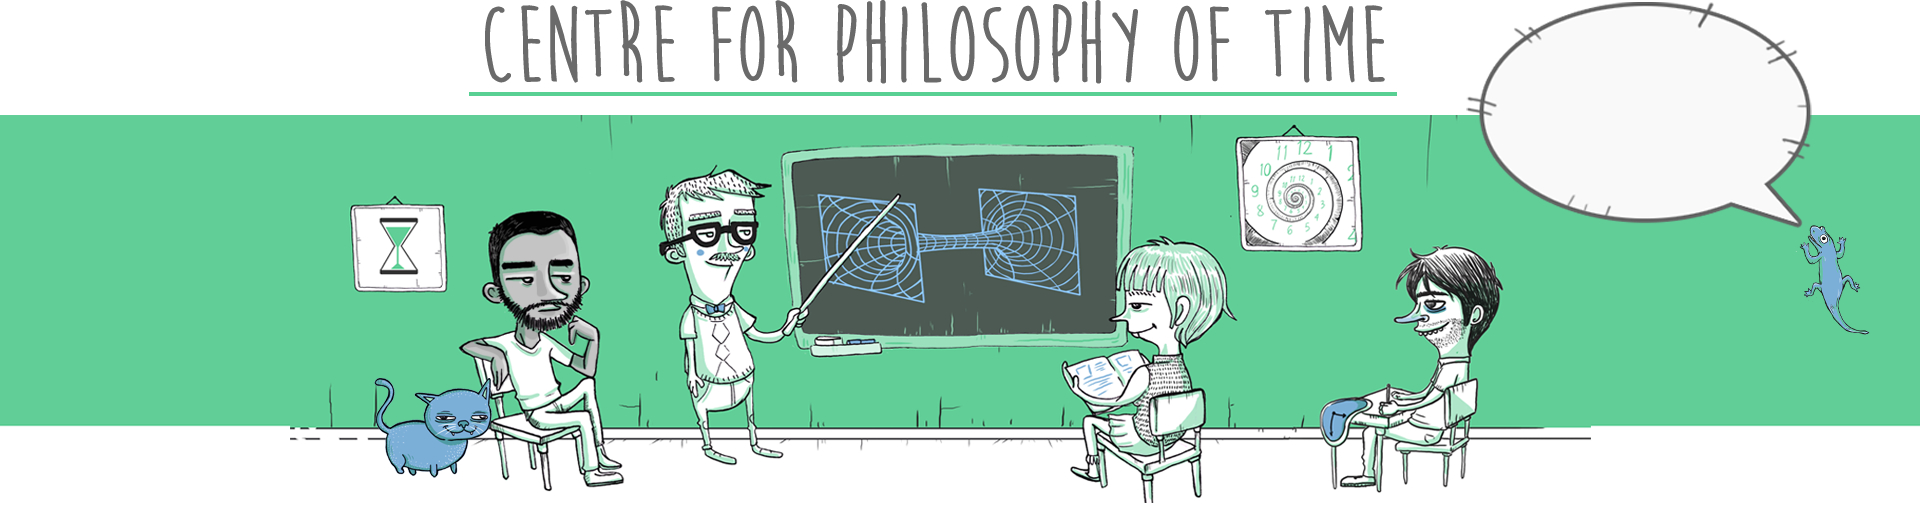 CENTre-FOR PHILOSOPhY OF TIME